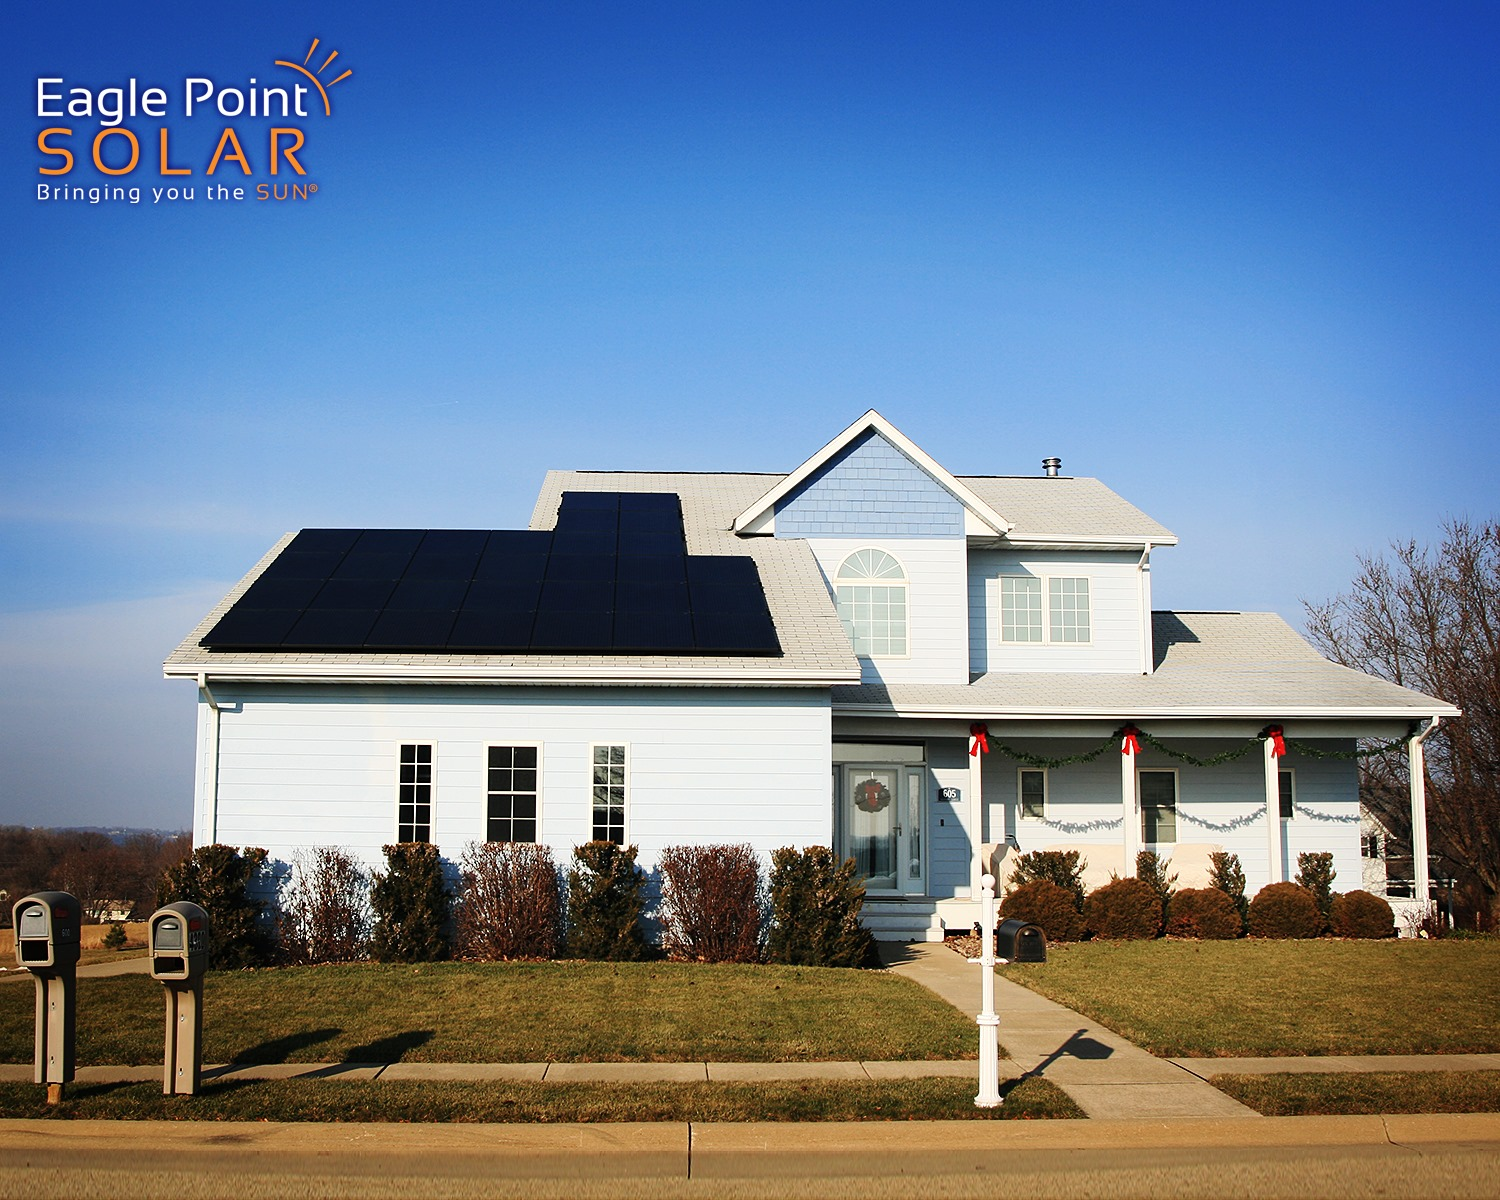 Photo of residential roof mounted solar array with black panels